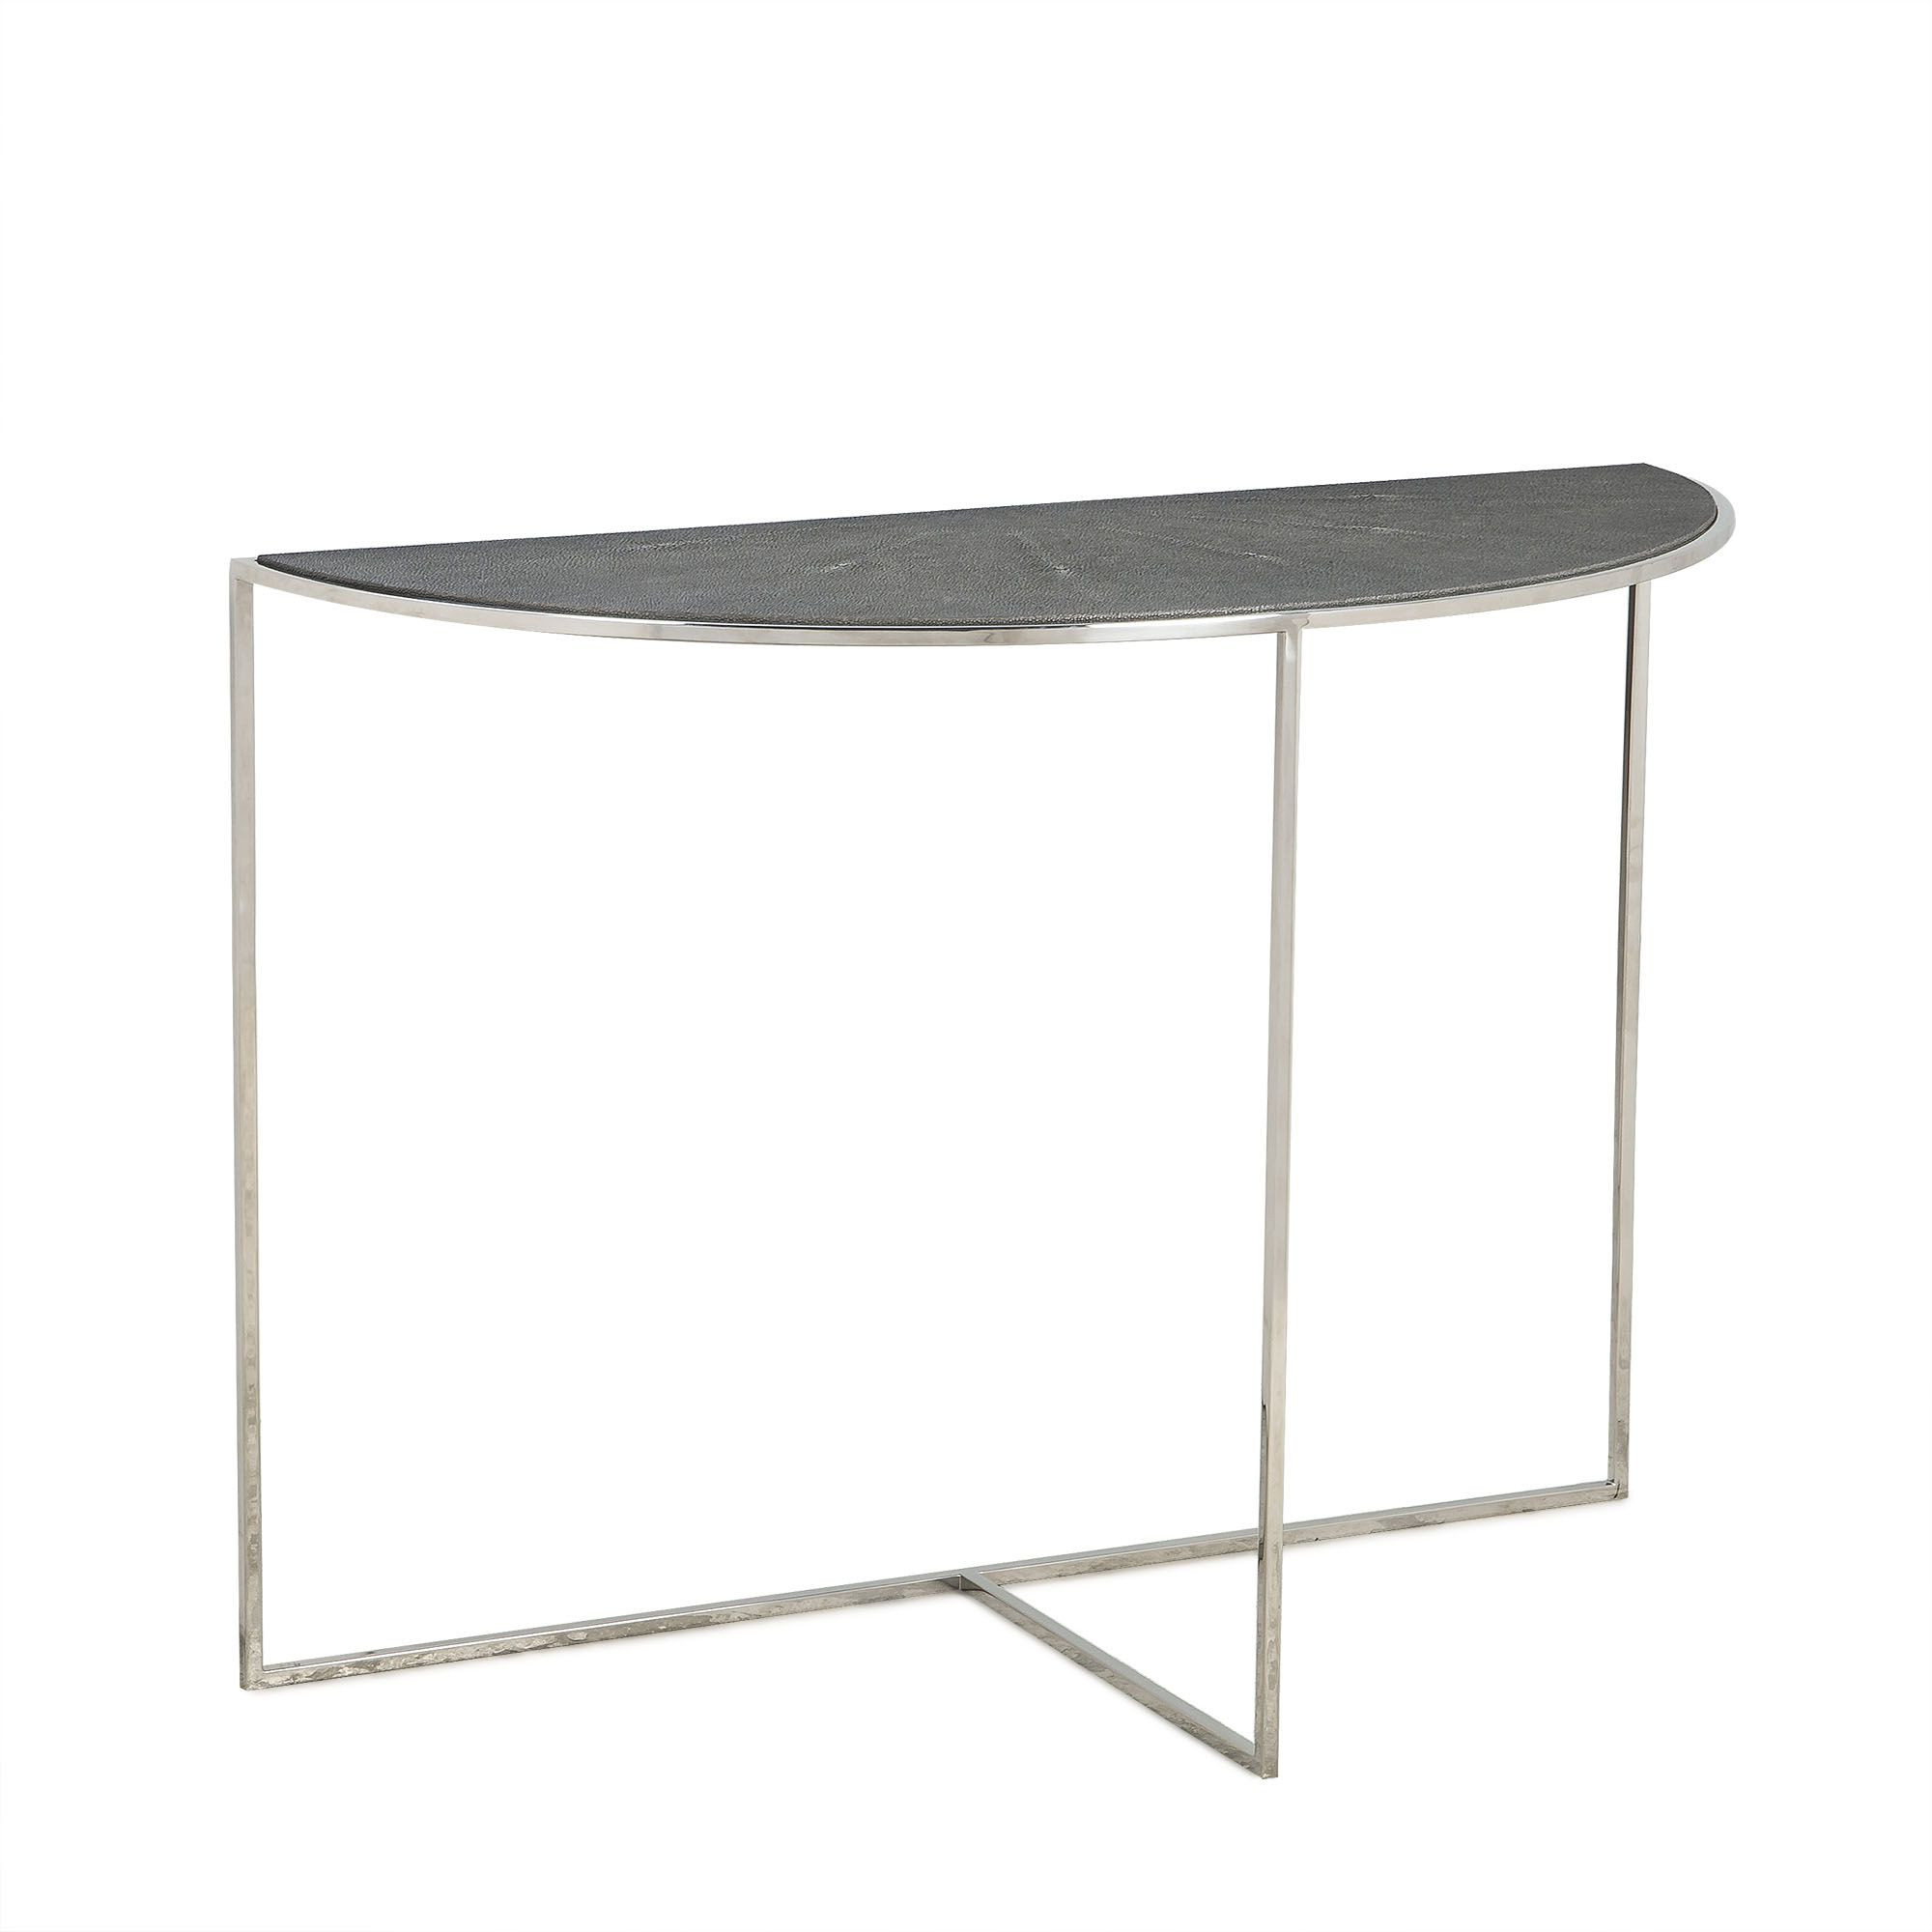 Living Room | Gwen Collection | Gwen Console Table | Transitional Pertaining To Elke Marble Console Tables With Brass Base (View 16 of 20)